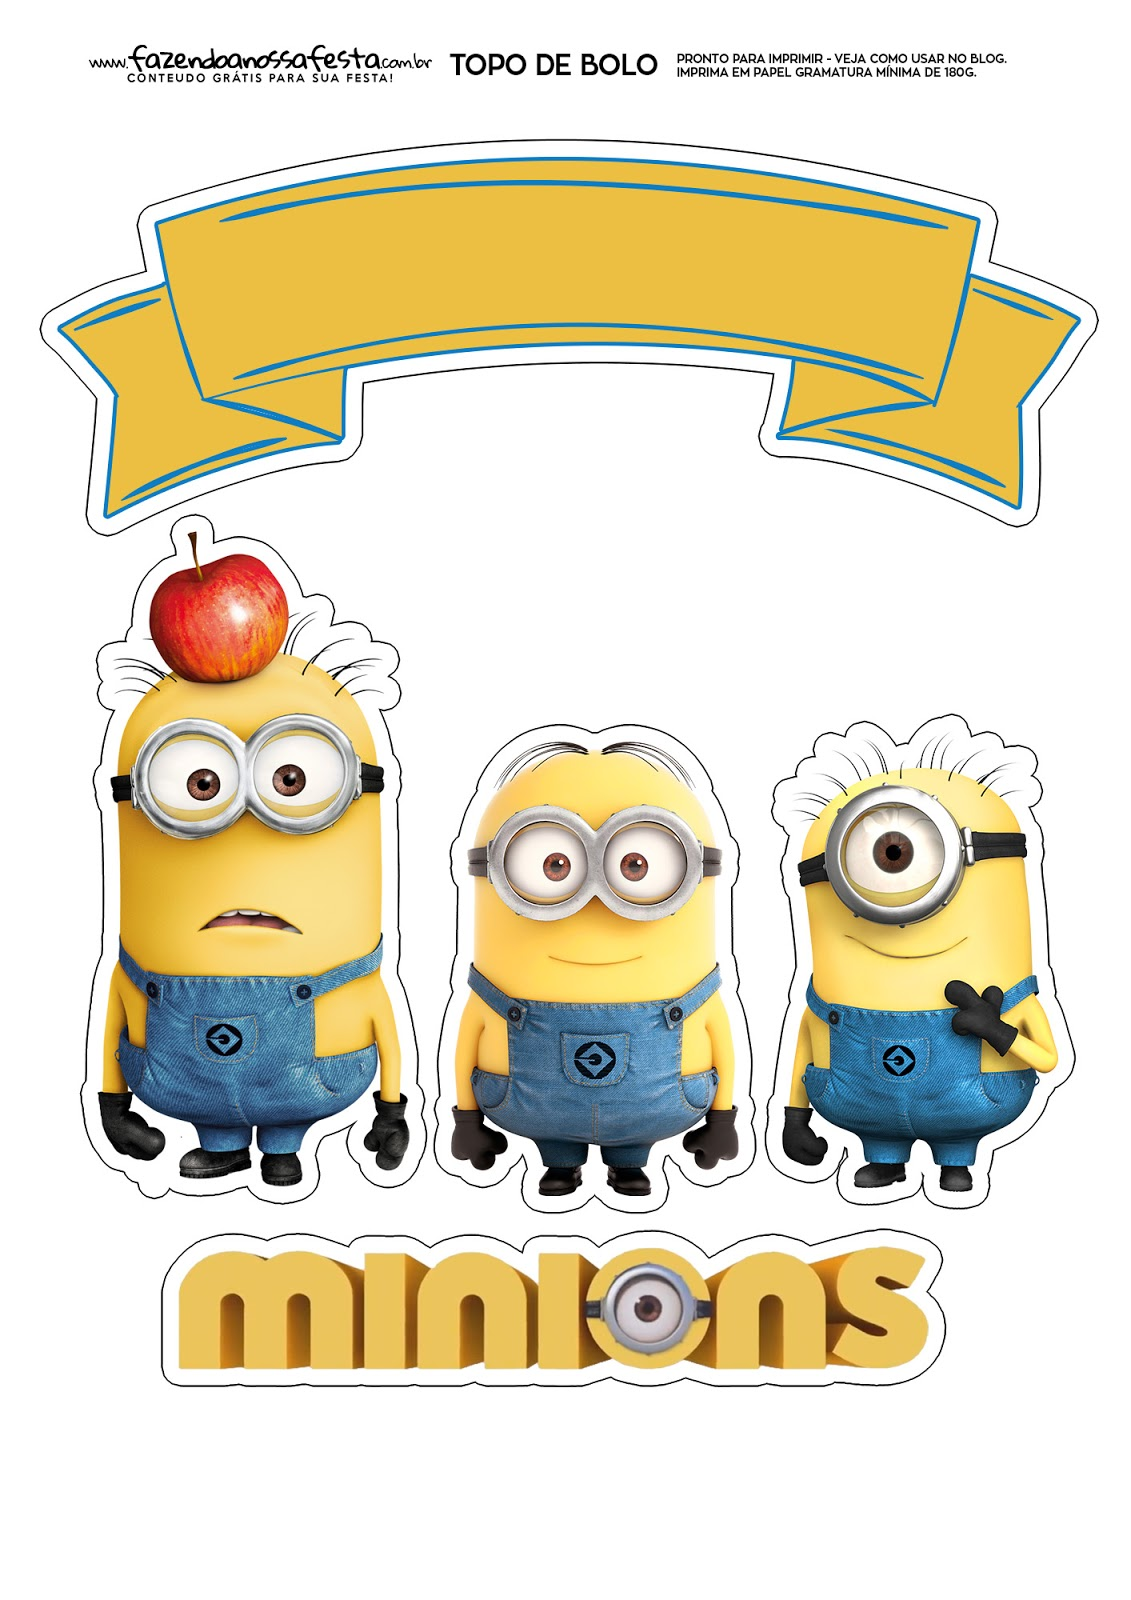 picture relating to Minions Printable identify Minions: Cost-free Printable Cake Toppers. - Oh My Fiesta! within english